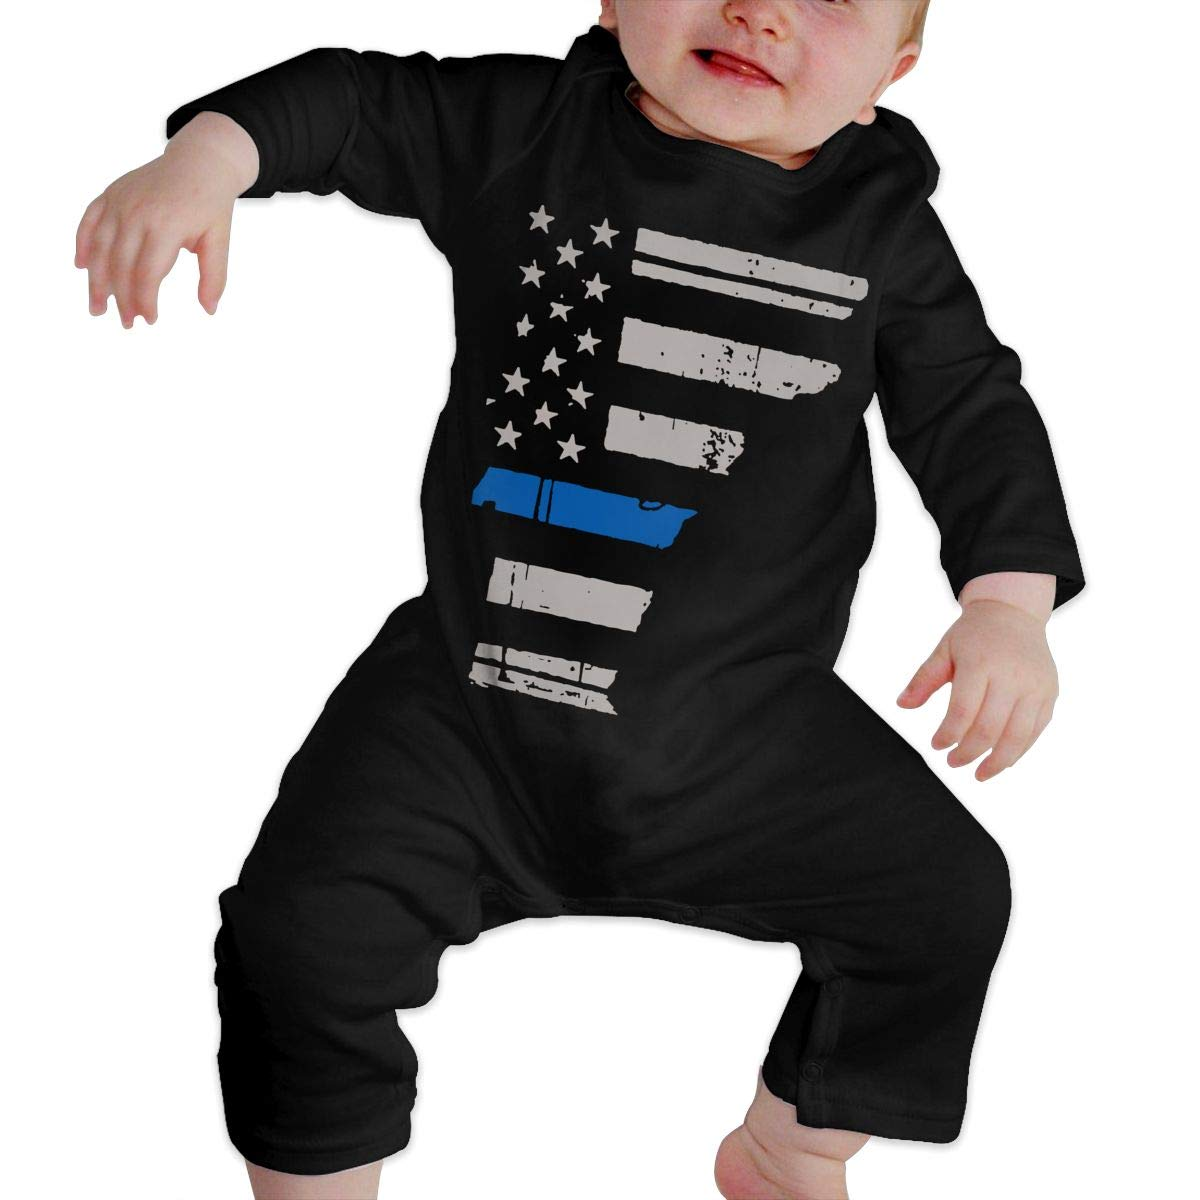 UGFGF-S3 Mexico Football Mexico Soccer Baby Boy Girl Long Sleeve Romper Jumpsuit Baby Rompers Onsies